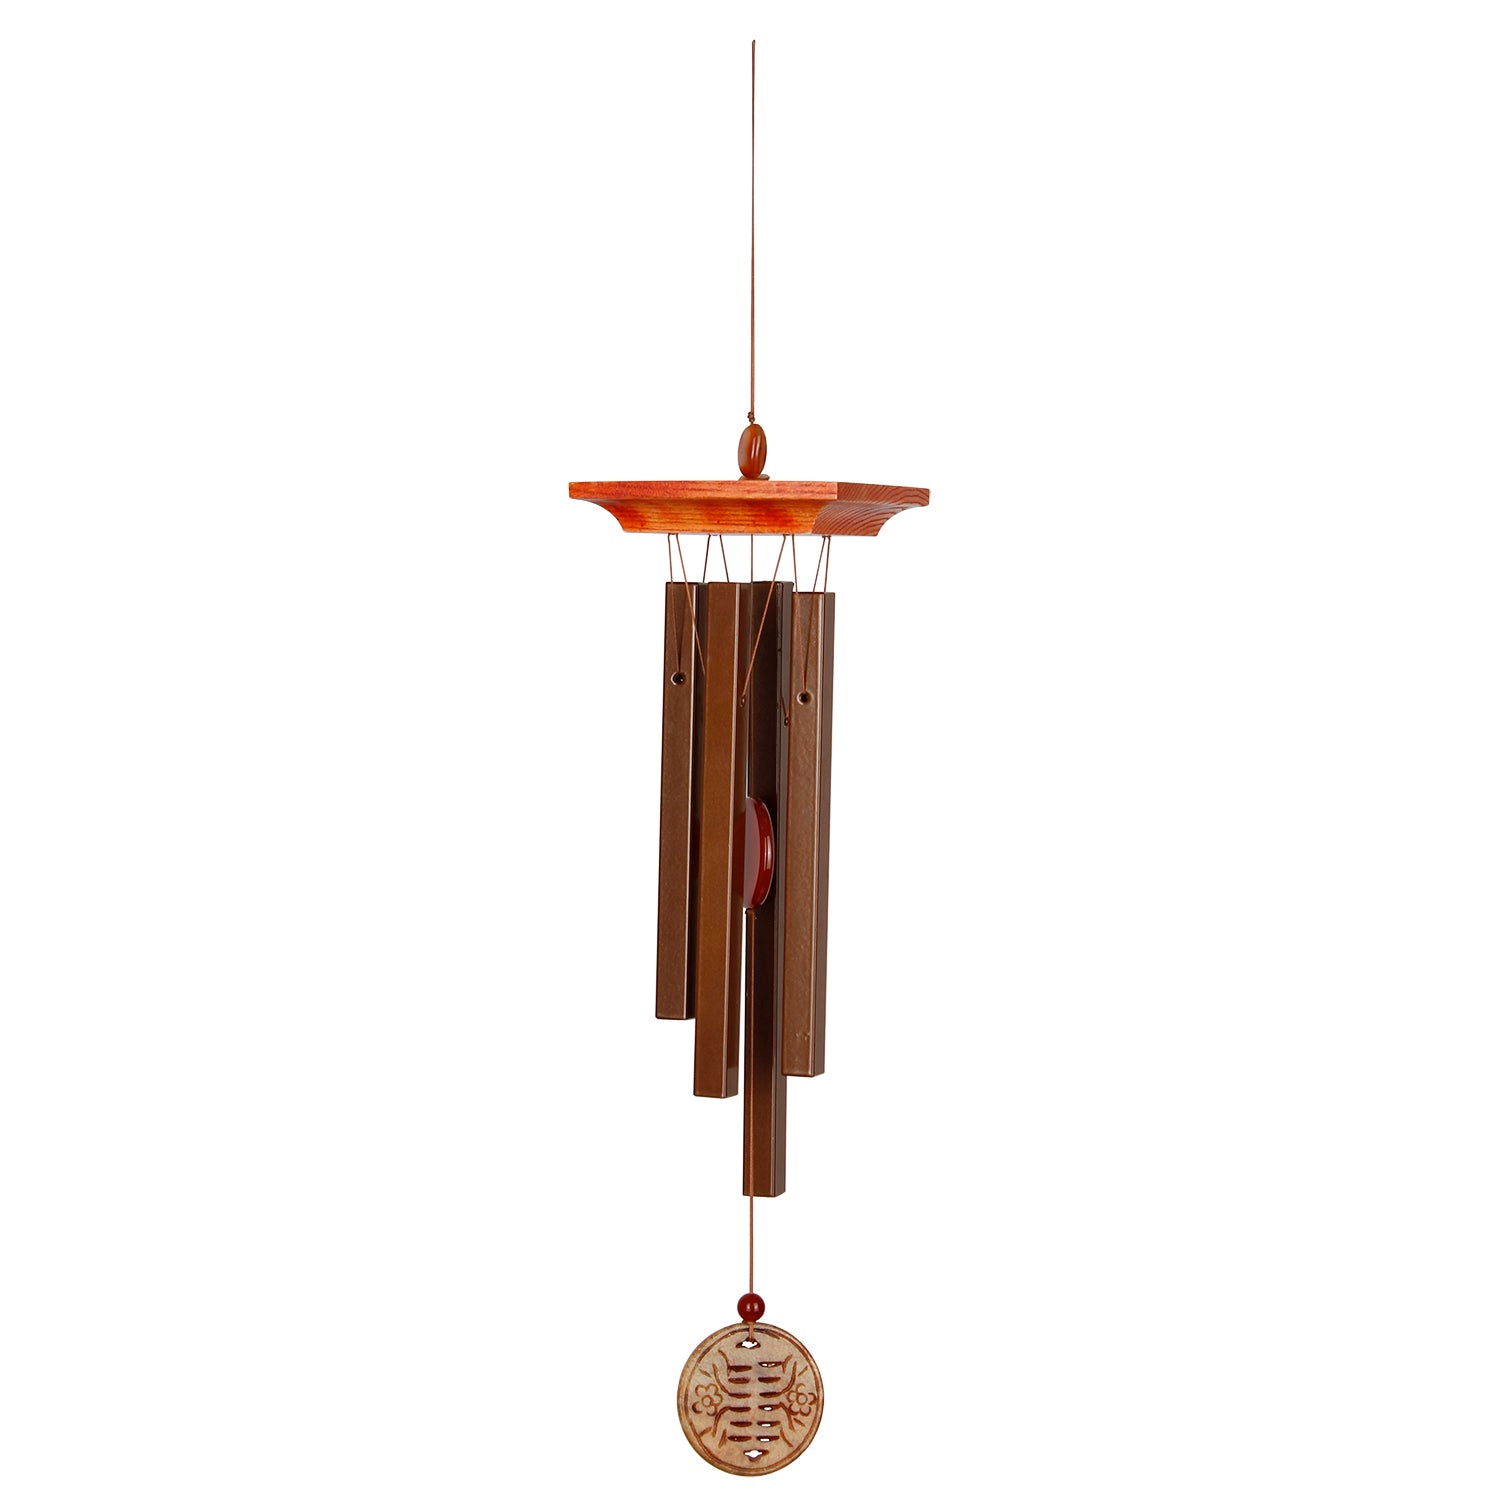 Amber Chime full product image